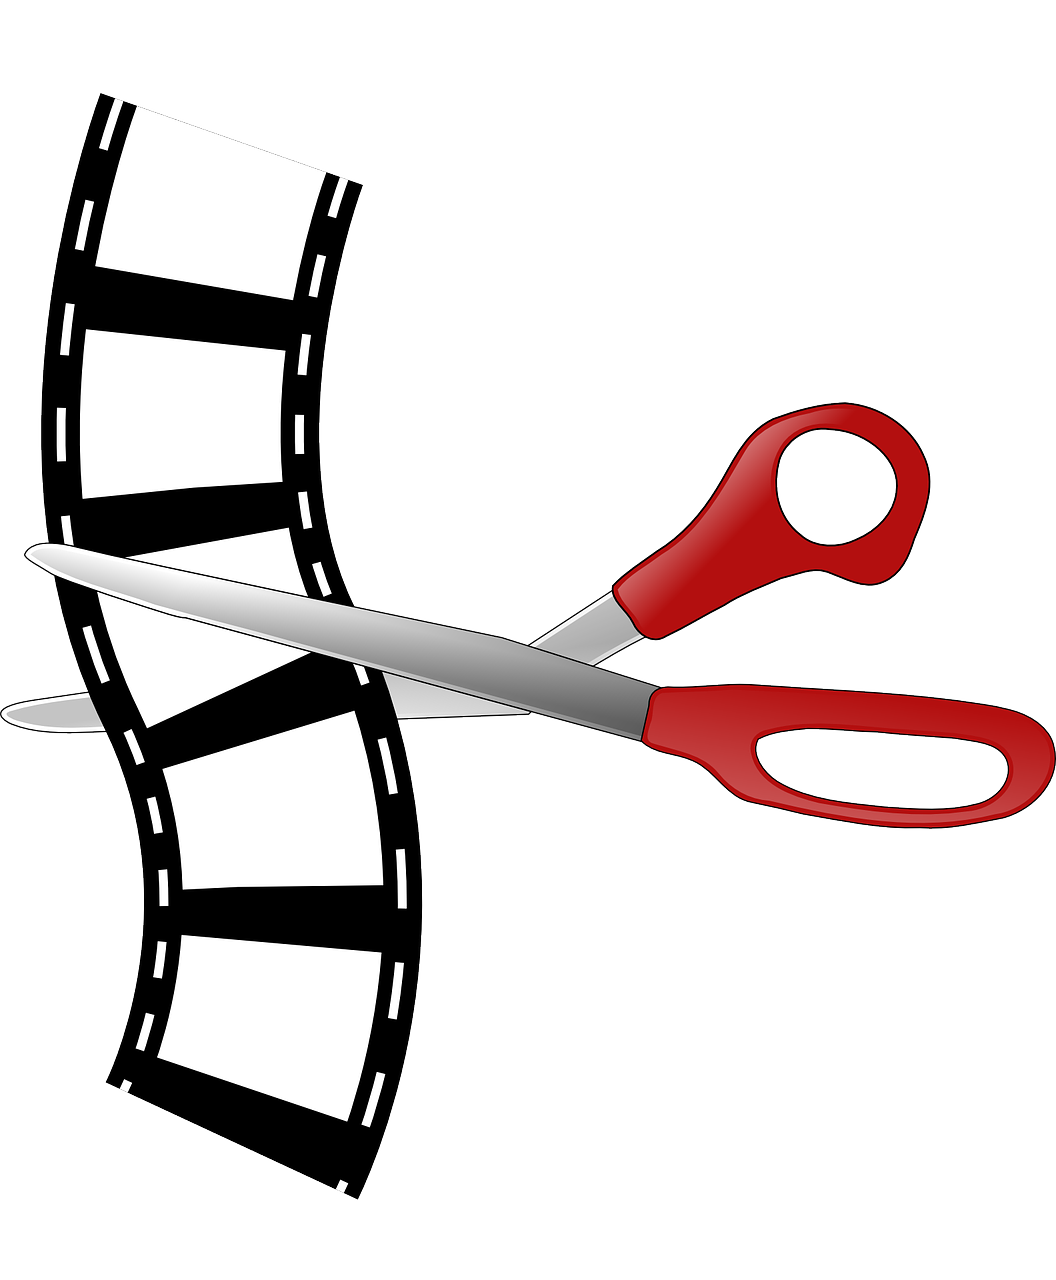 Seven Innovative Approaches To Improve Your Video Editing